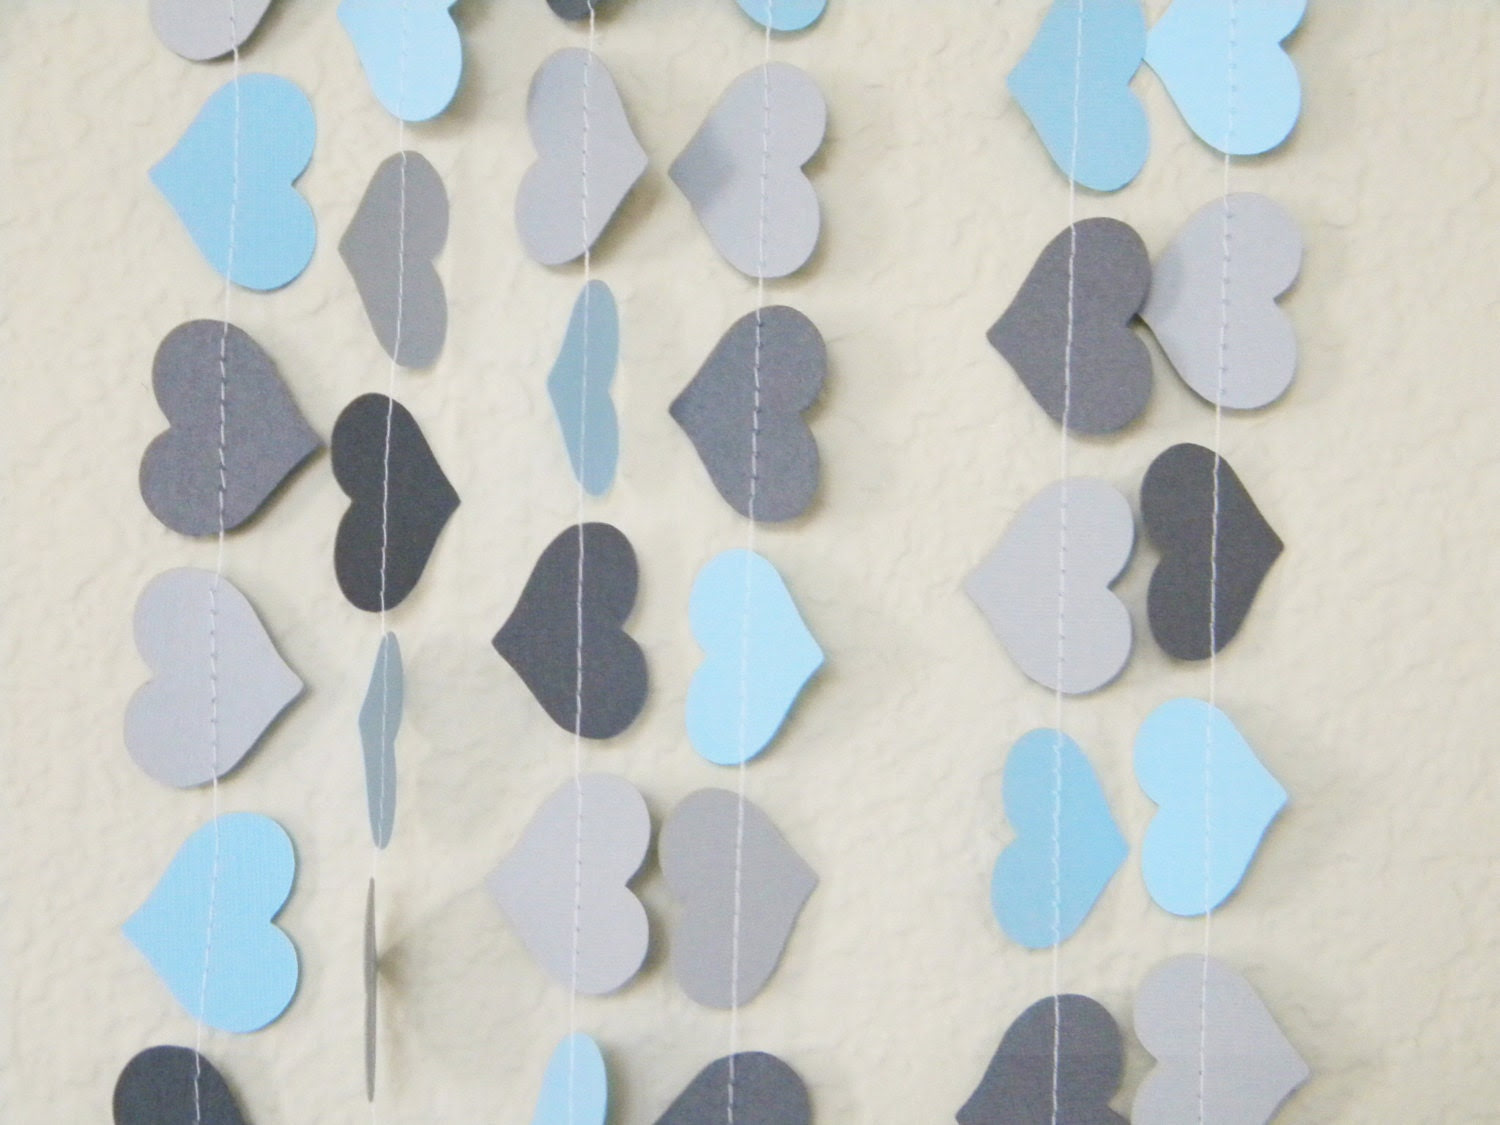 Light Blue Gray Dark Grey Fancy Hearts Paper Garland Photo Booth Prop, Birthday Party, Nursery, Baby or Bridal Shower 10 feet - TheKraftRoom